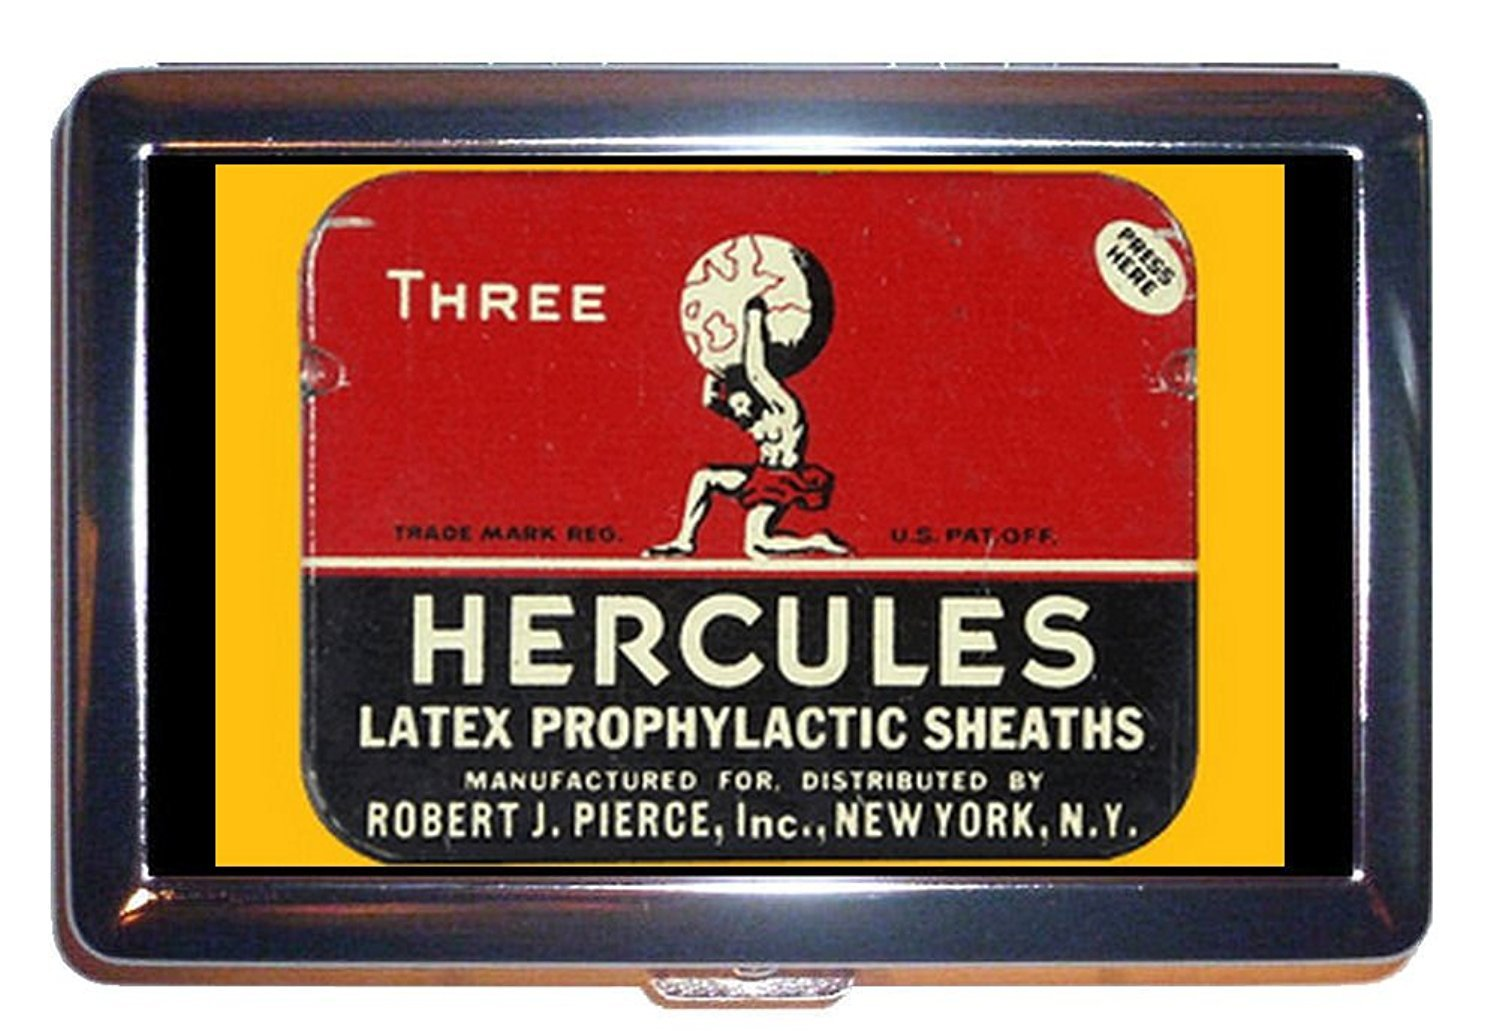 Retro Condom Graphic Hercules Stainless Steel ID or Cigarettes Case (King Size or 100mm) by Coastal Colors   B00P331ZM6